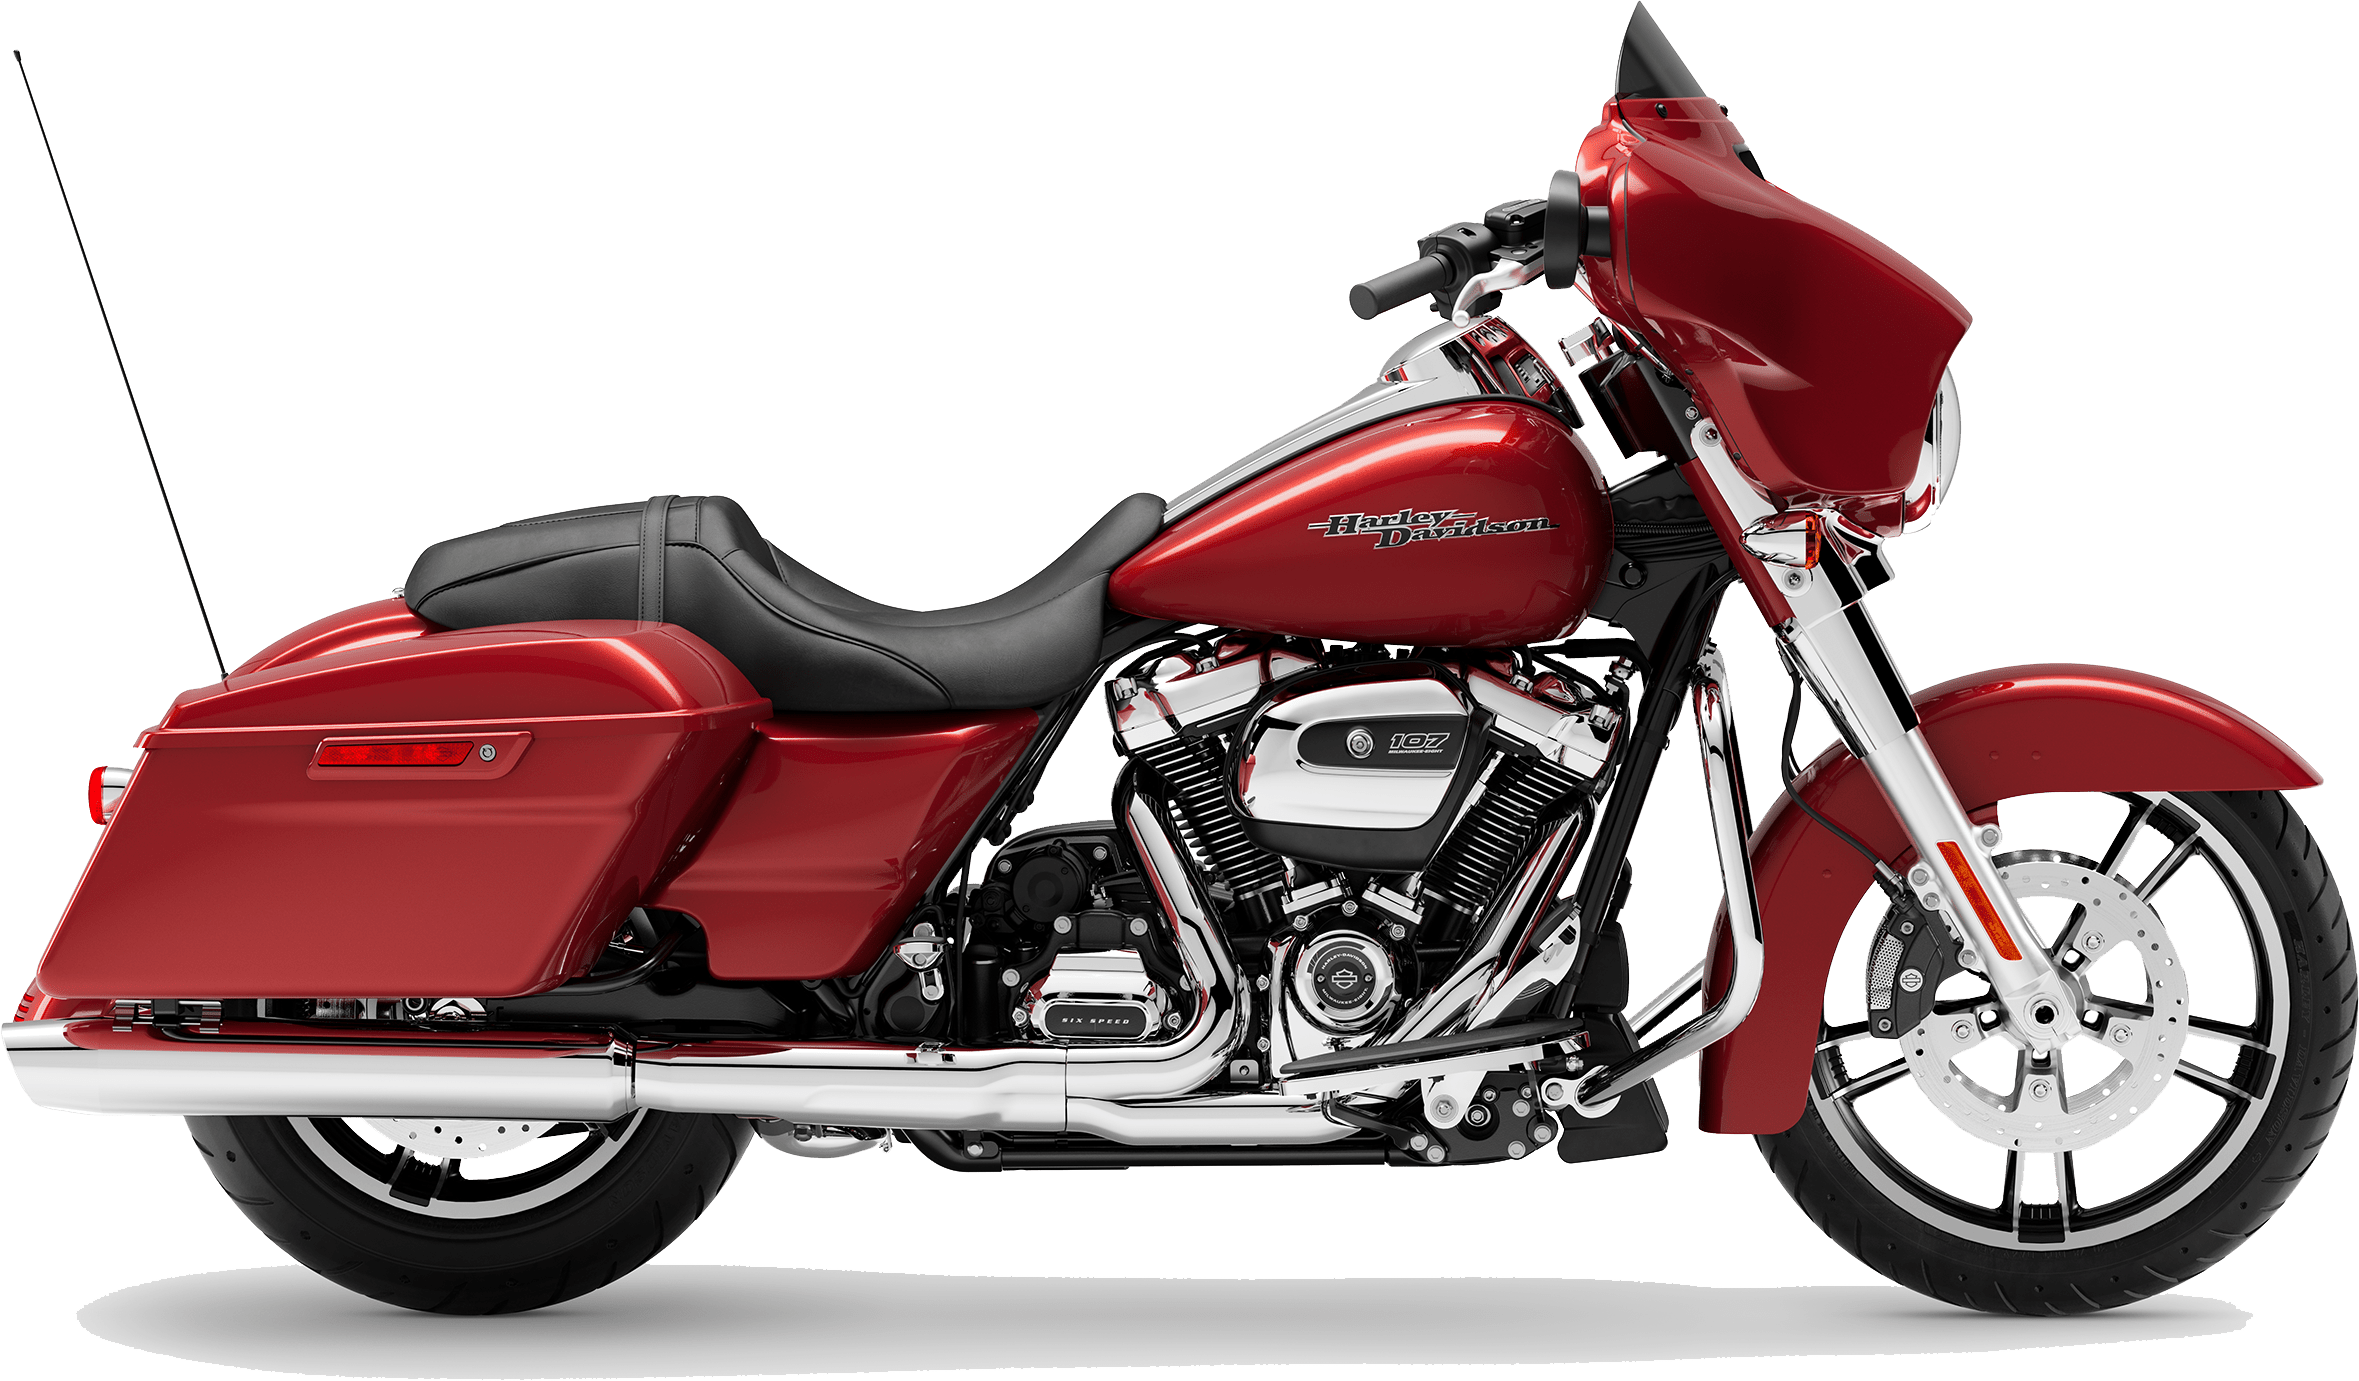 2019 Harley-Davidson H-D Touring Street Glide Wicked Red